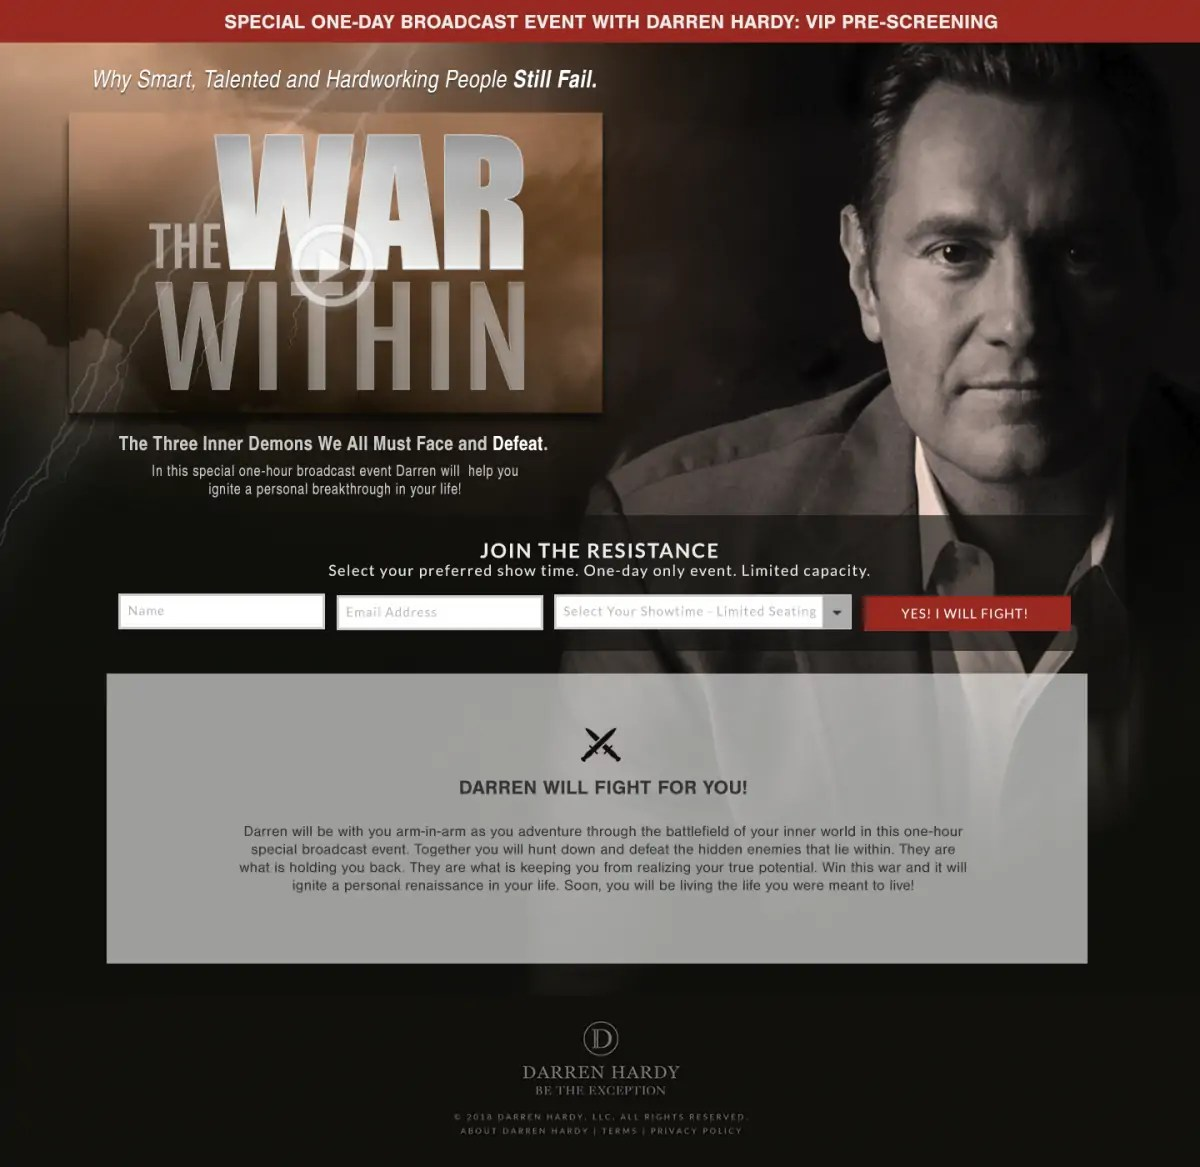 Darren Hardy's War Within